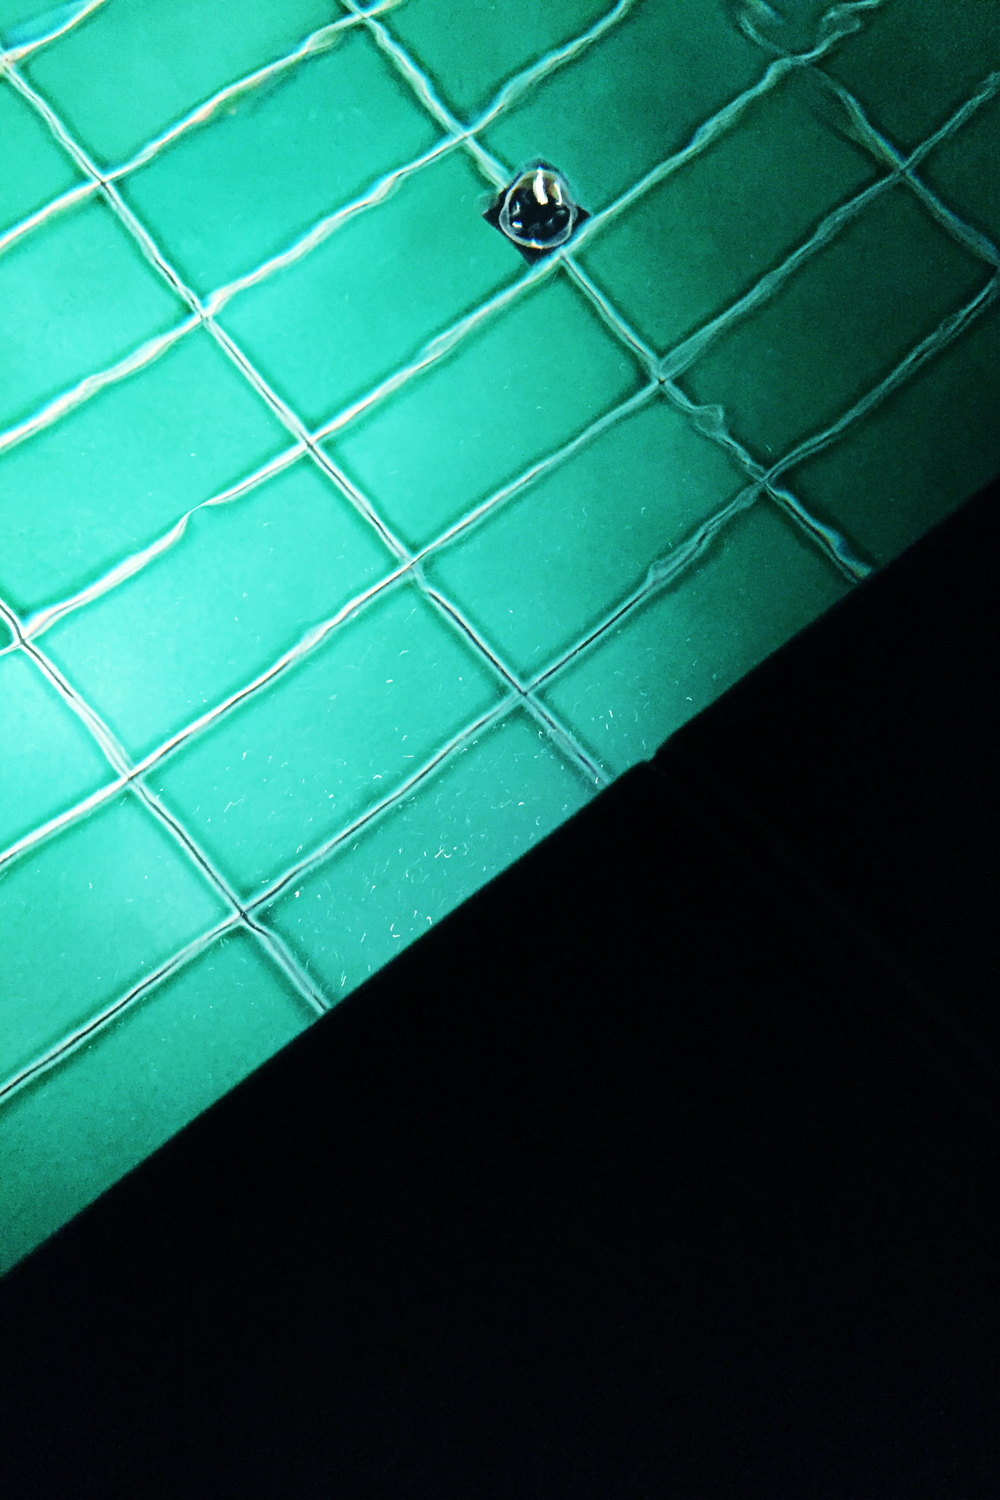 fatimayarie-sohohouse-berlin-pool-mint-water-tiles-img_9284